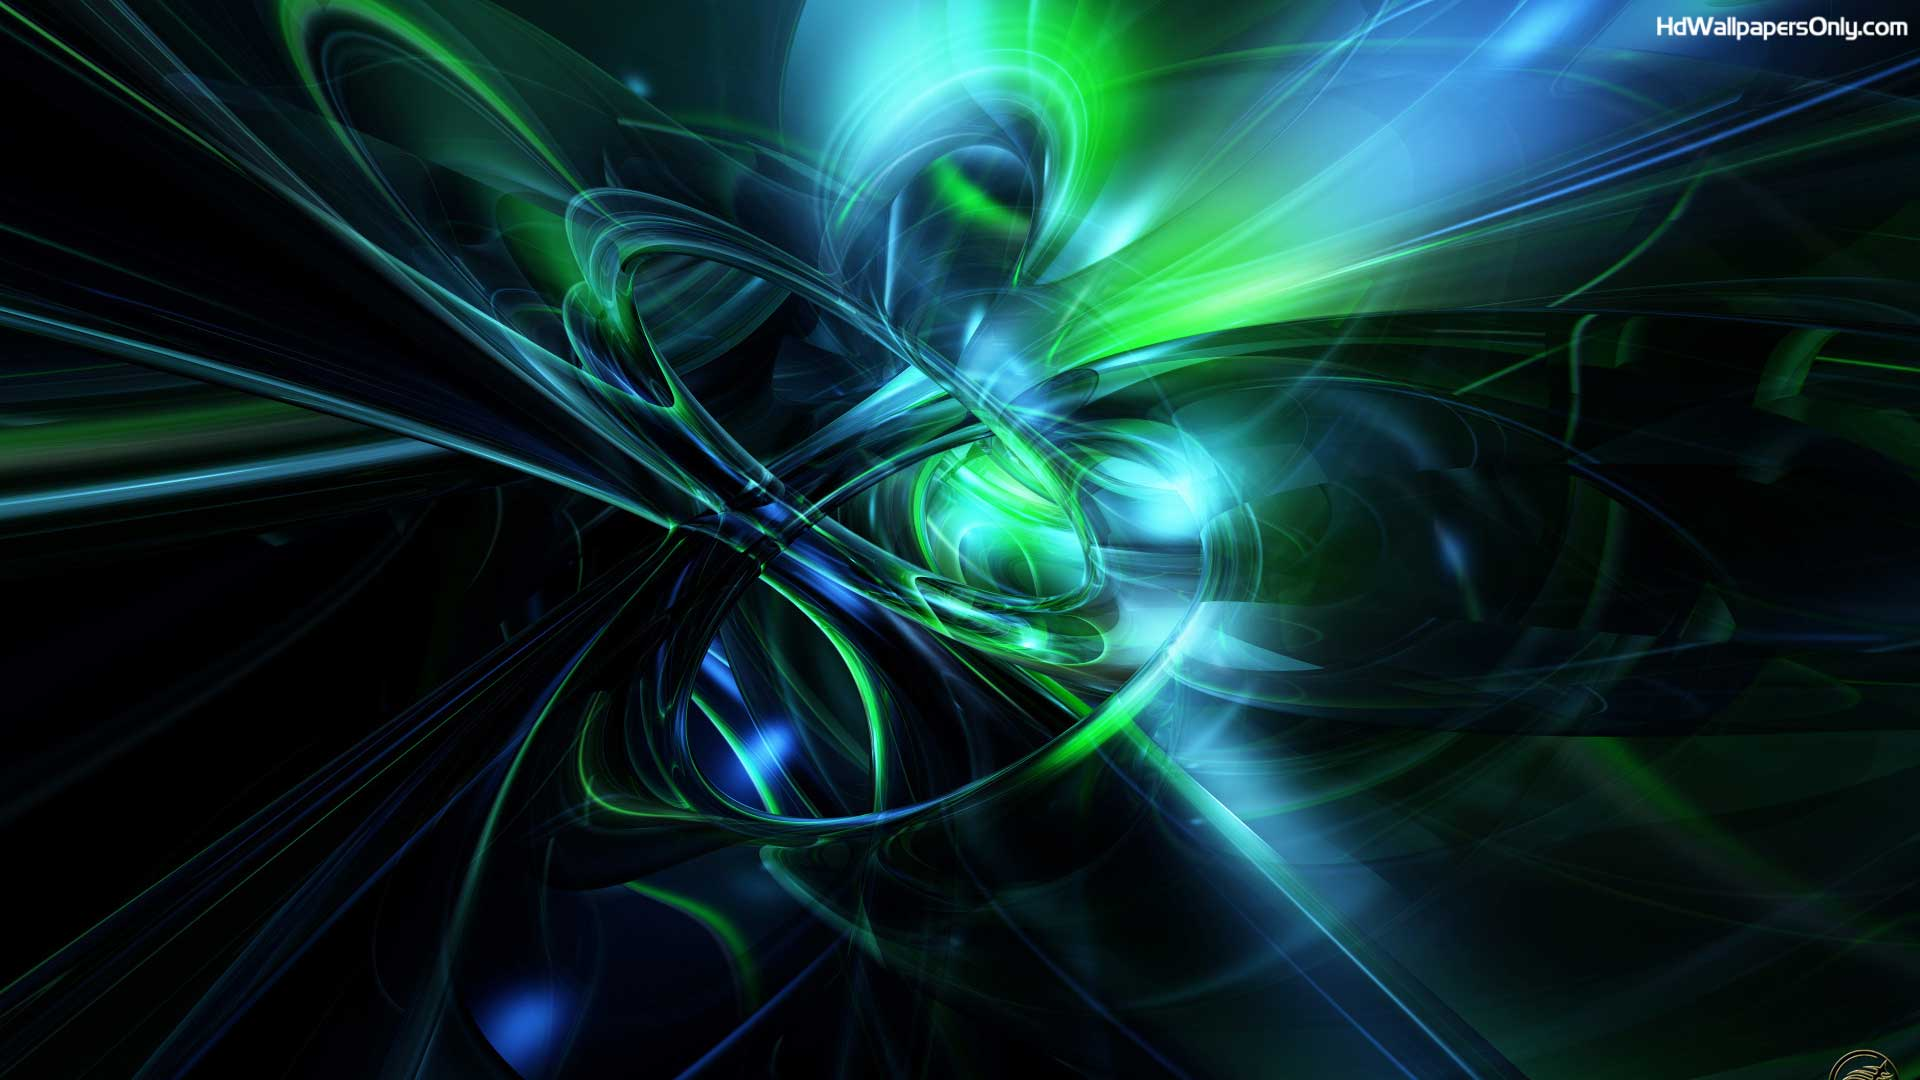 1080p Cool Background Images Hd